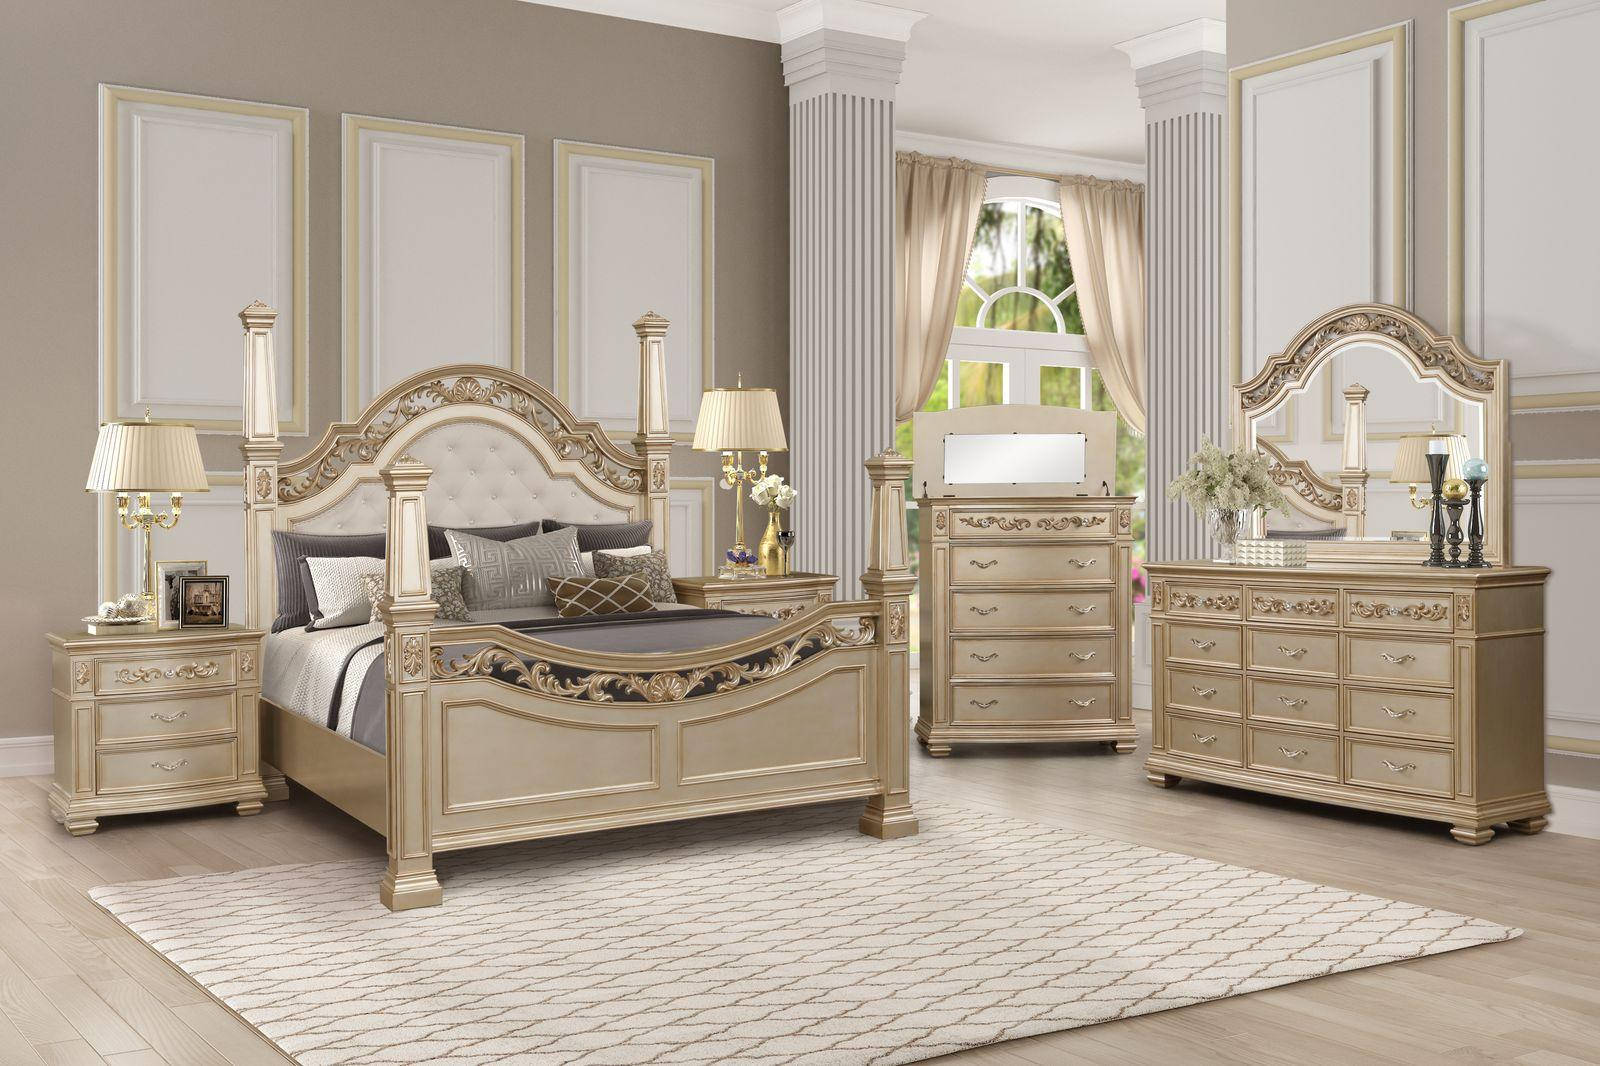 Traditional Gold  and Wood King Poster Bedroom Set 6 pcs Valentina by Cosmos Furniture